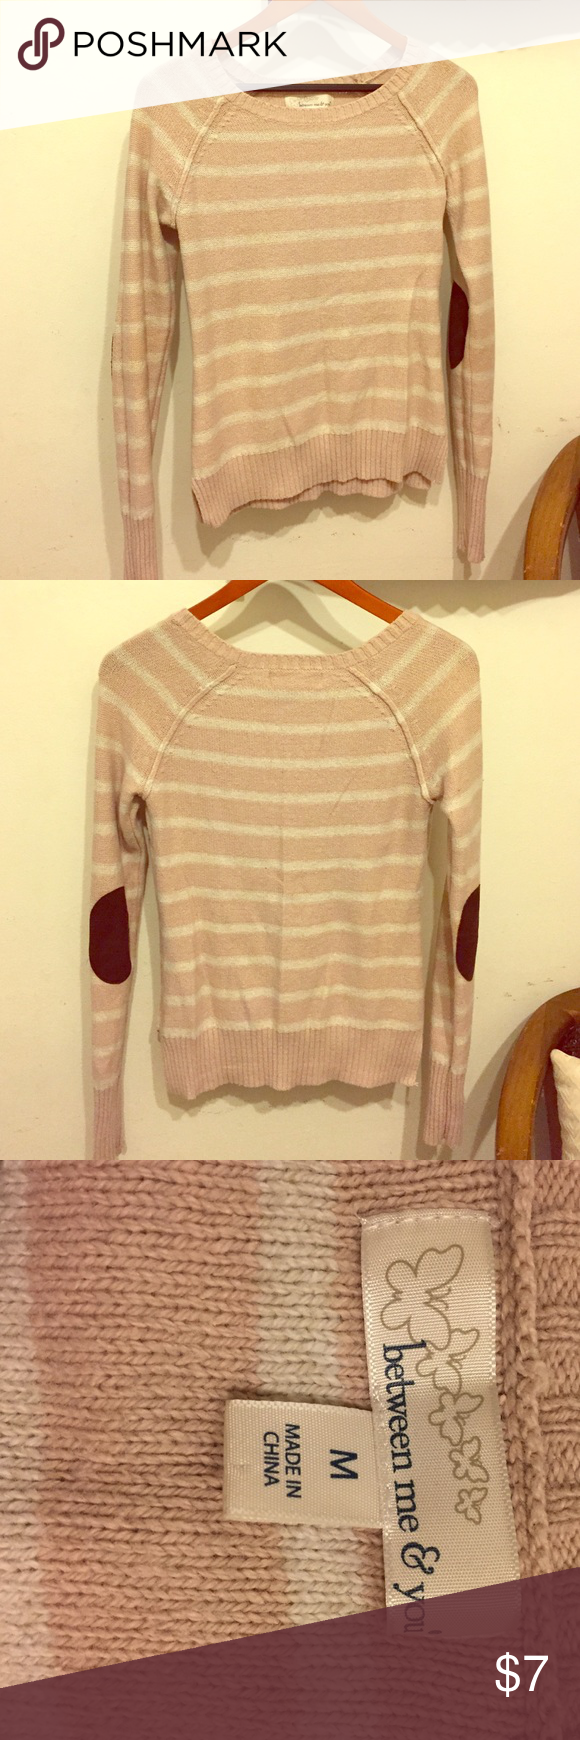 Pale pink and white striped sweater Comfy pink and white striped ...